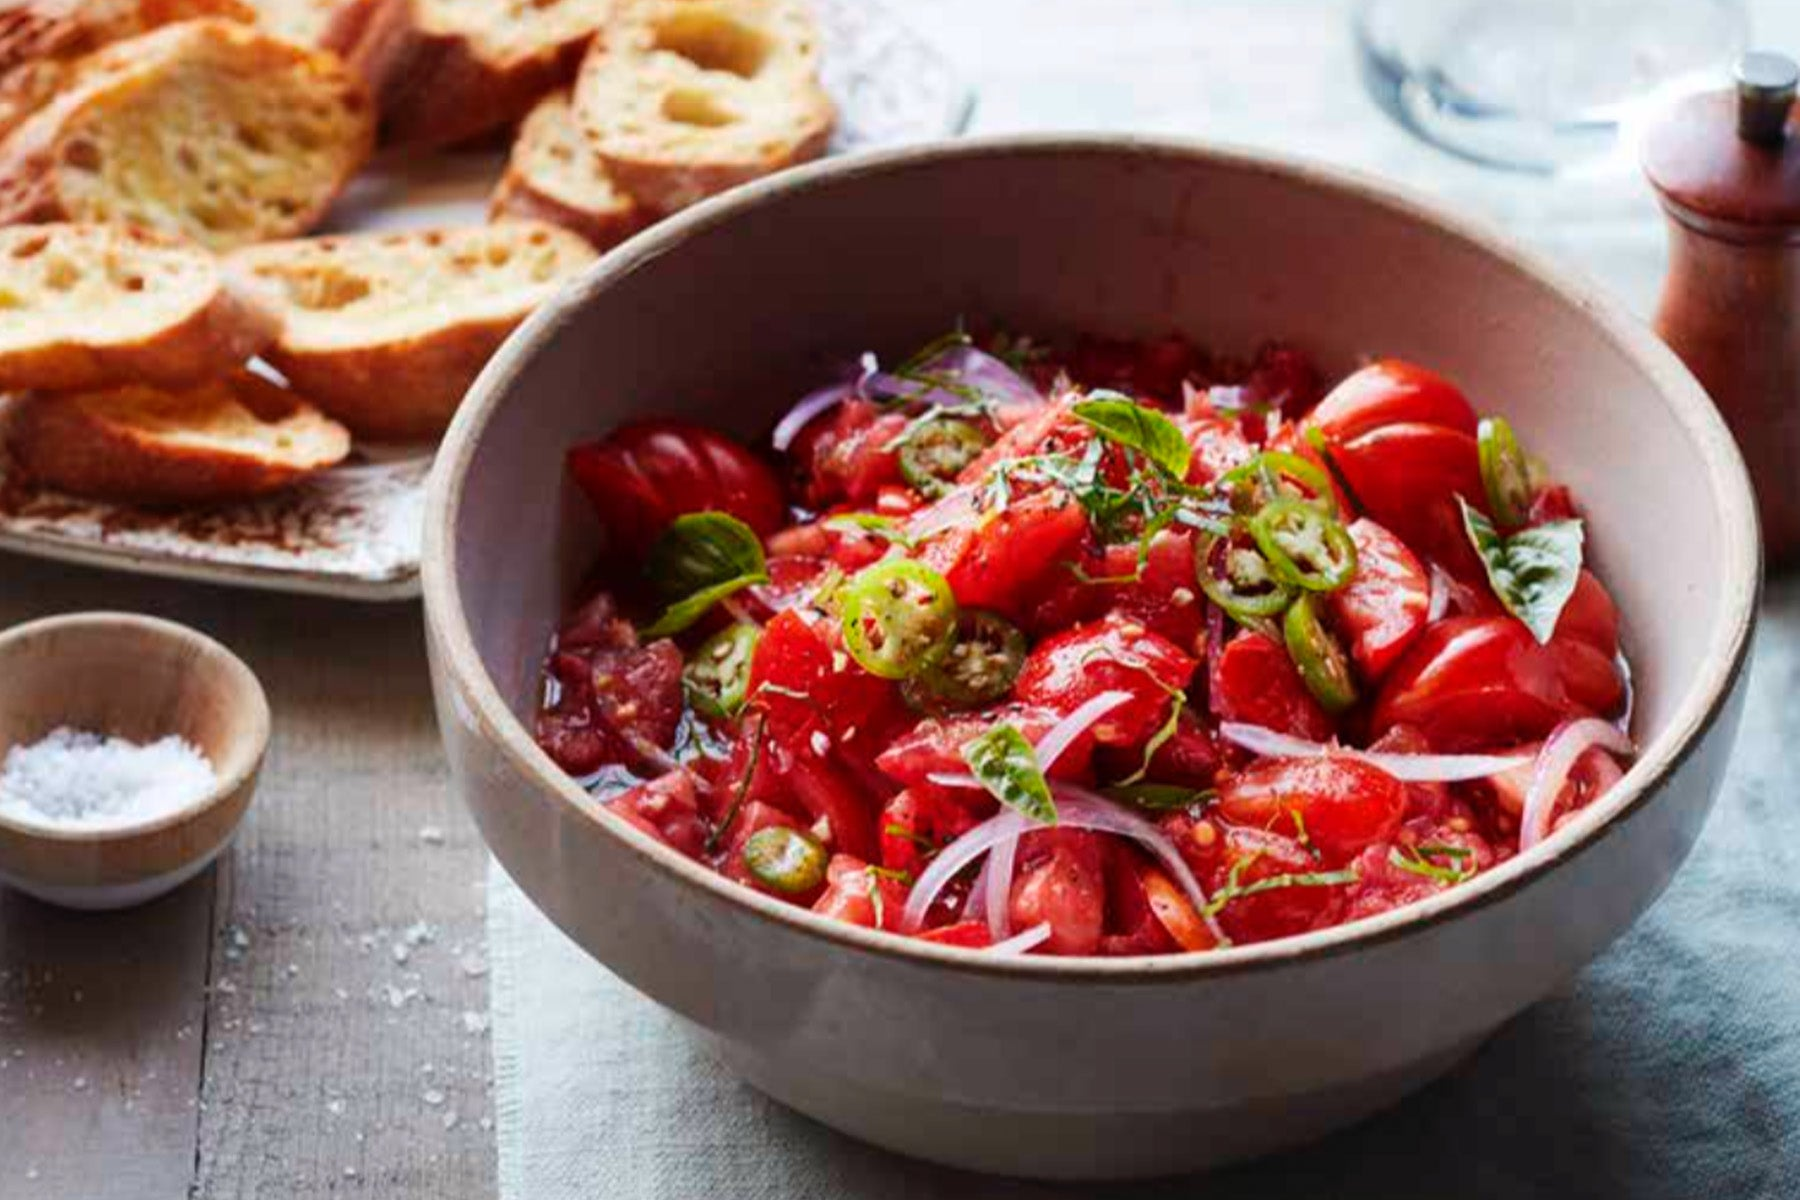 Grandma's Simple Tomato Salad with Buttery Crostini